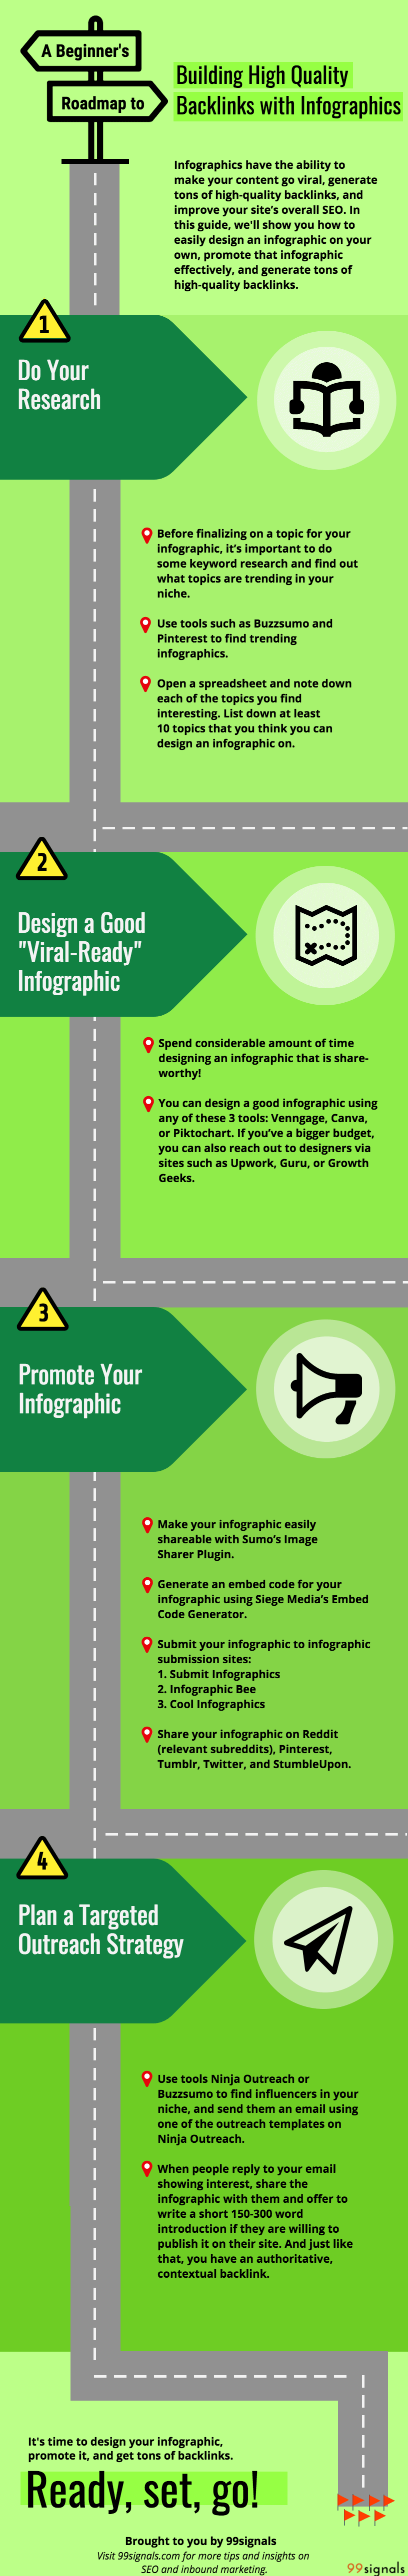 Building-High-Quality-Backlinks-with-Infographic-lkrllc